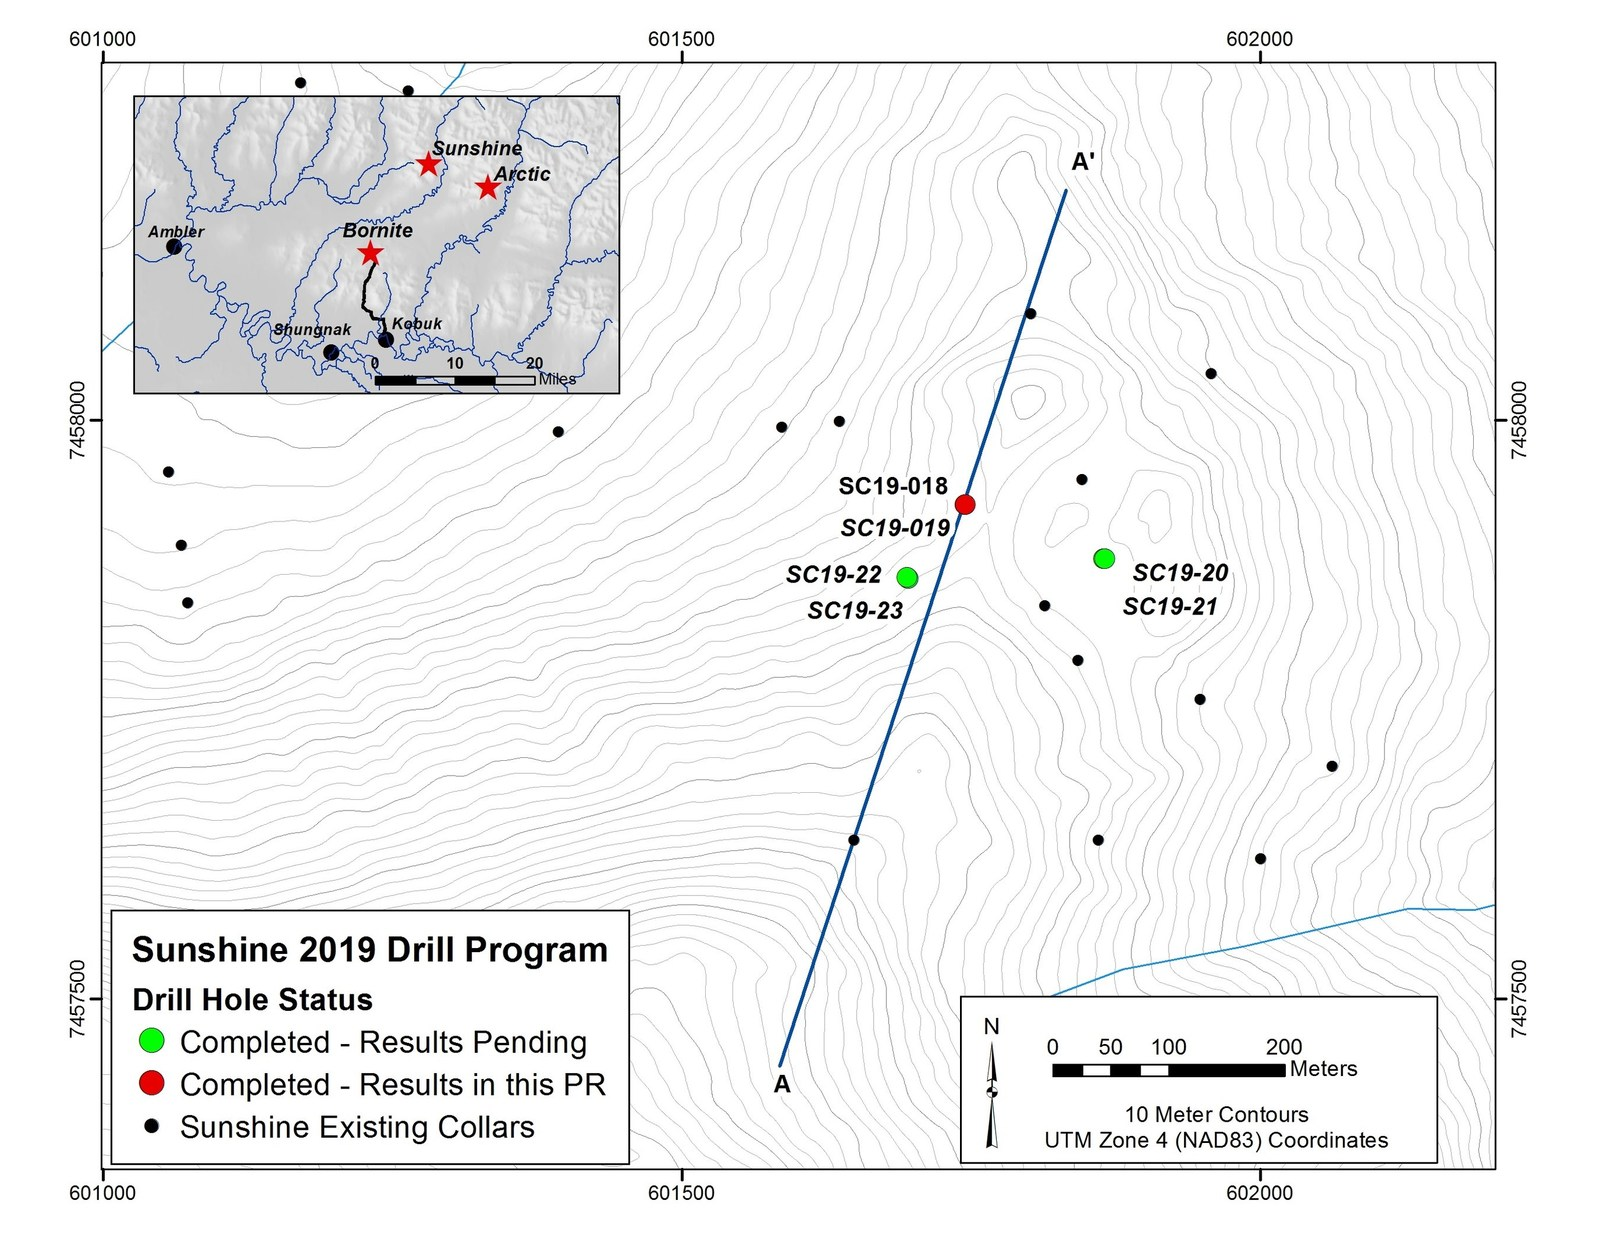 Figure 4- Map Showing Location of 2019 Drilling Program at Sunshine